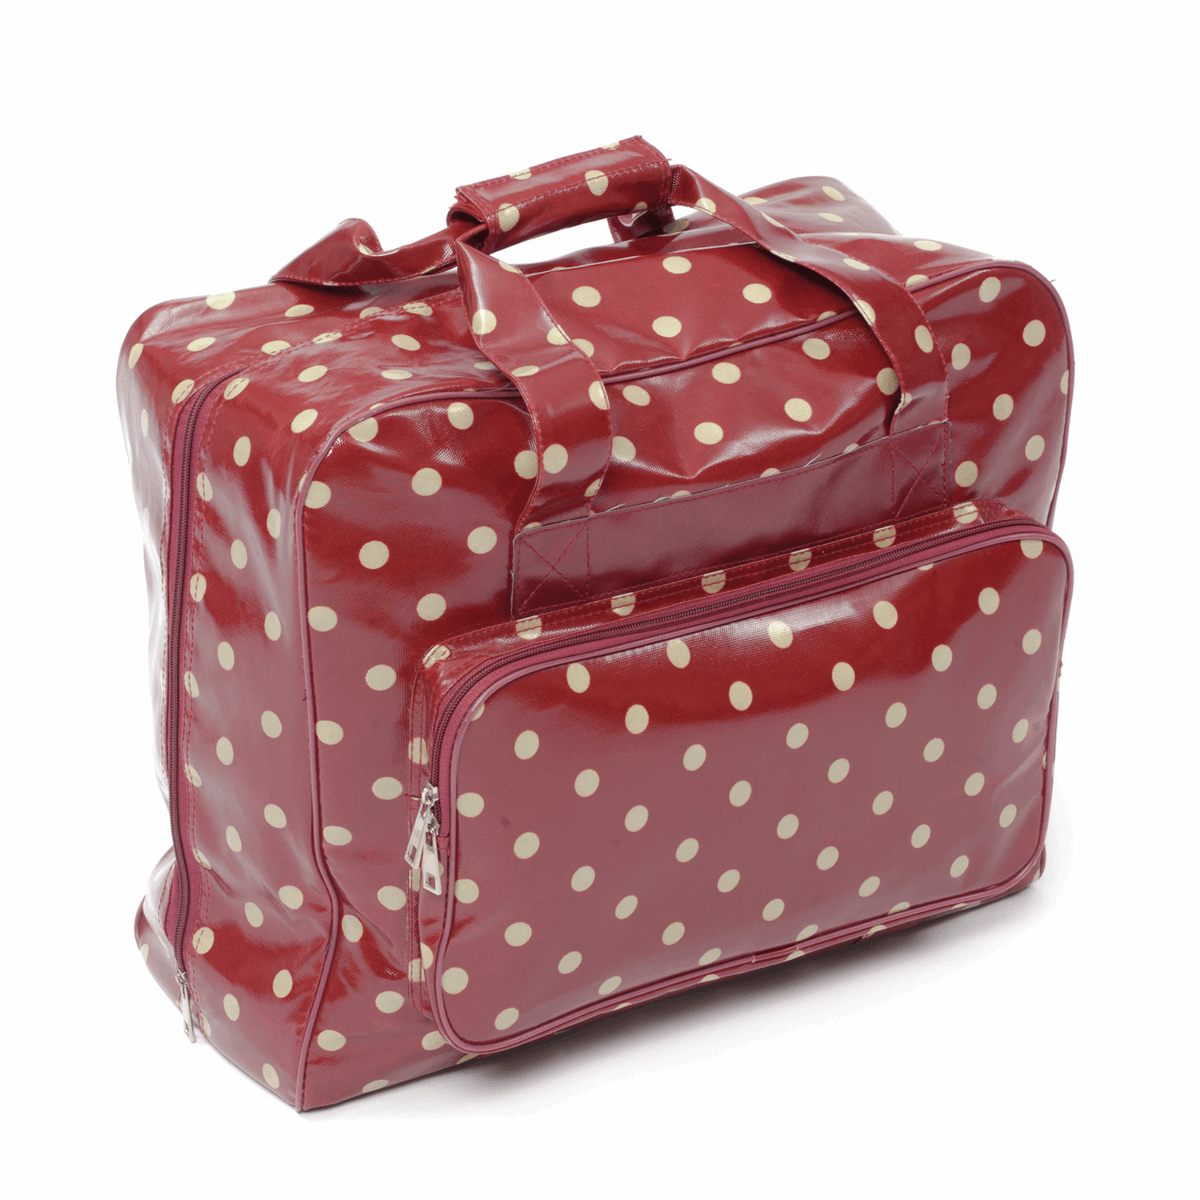 Red Spot Sewing Machine Bag * offer *